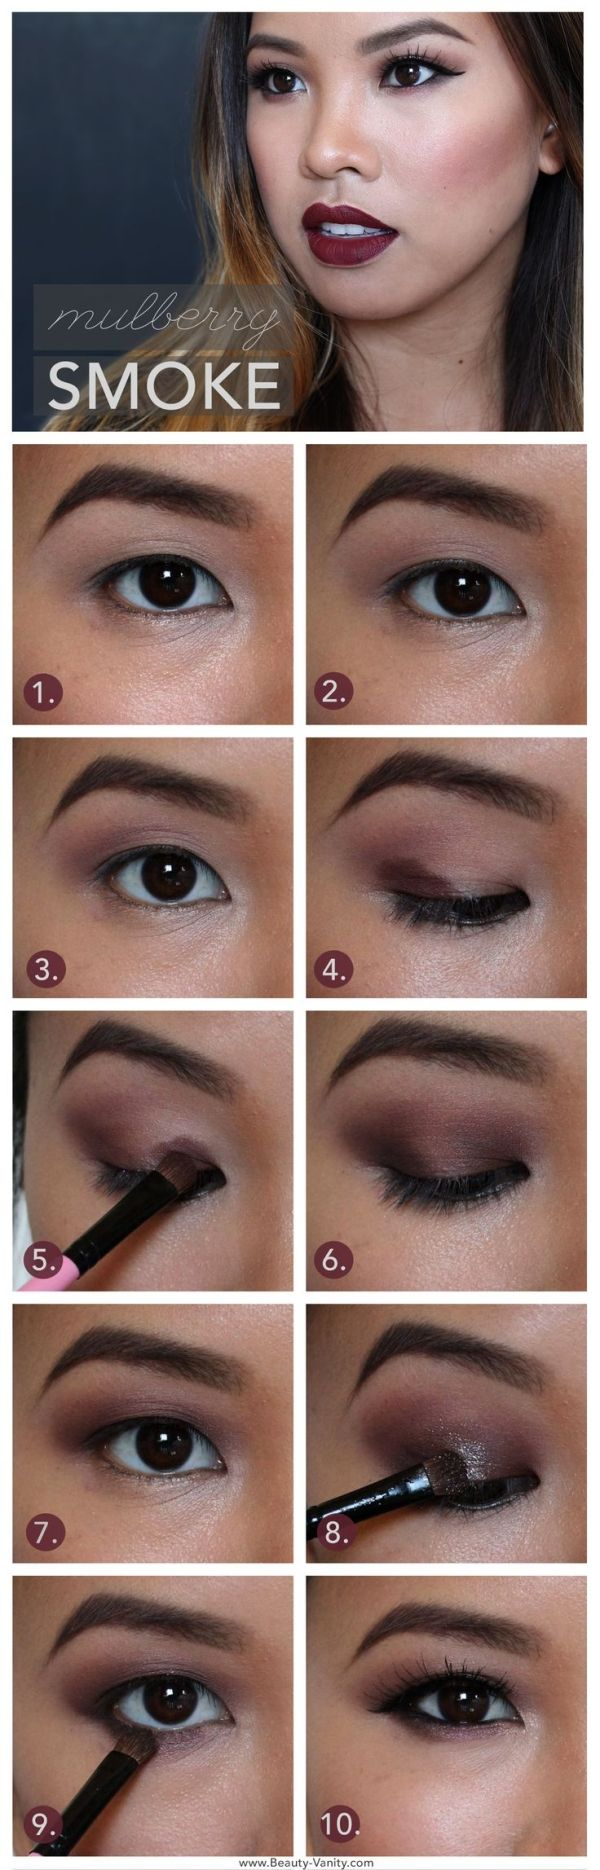 Beauty Vanity | Mulberry Smoke: Dark Lips and Berry Lids Makeup Tutorial for Asian Eyes by AislingH